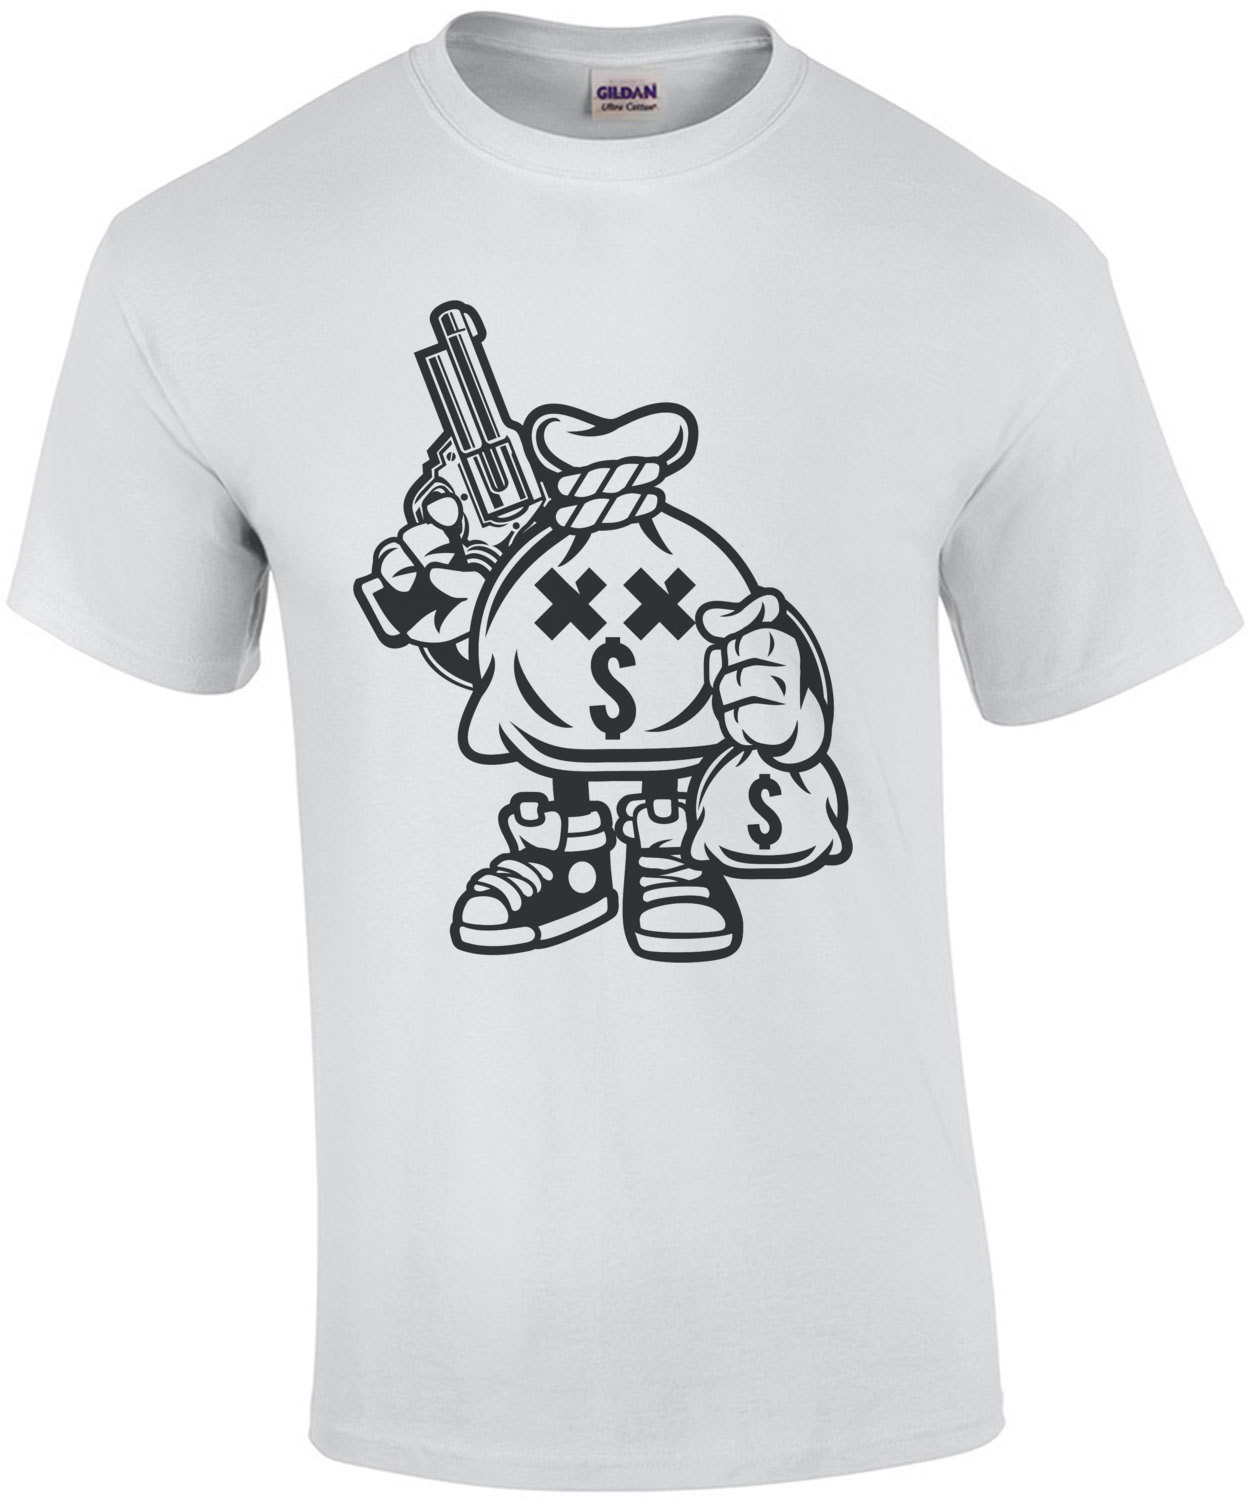 Retro Moneybag Robber T-Shirt